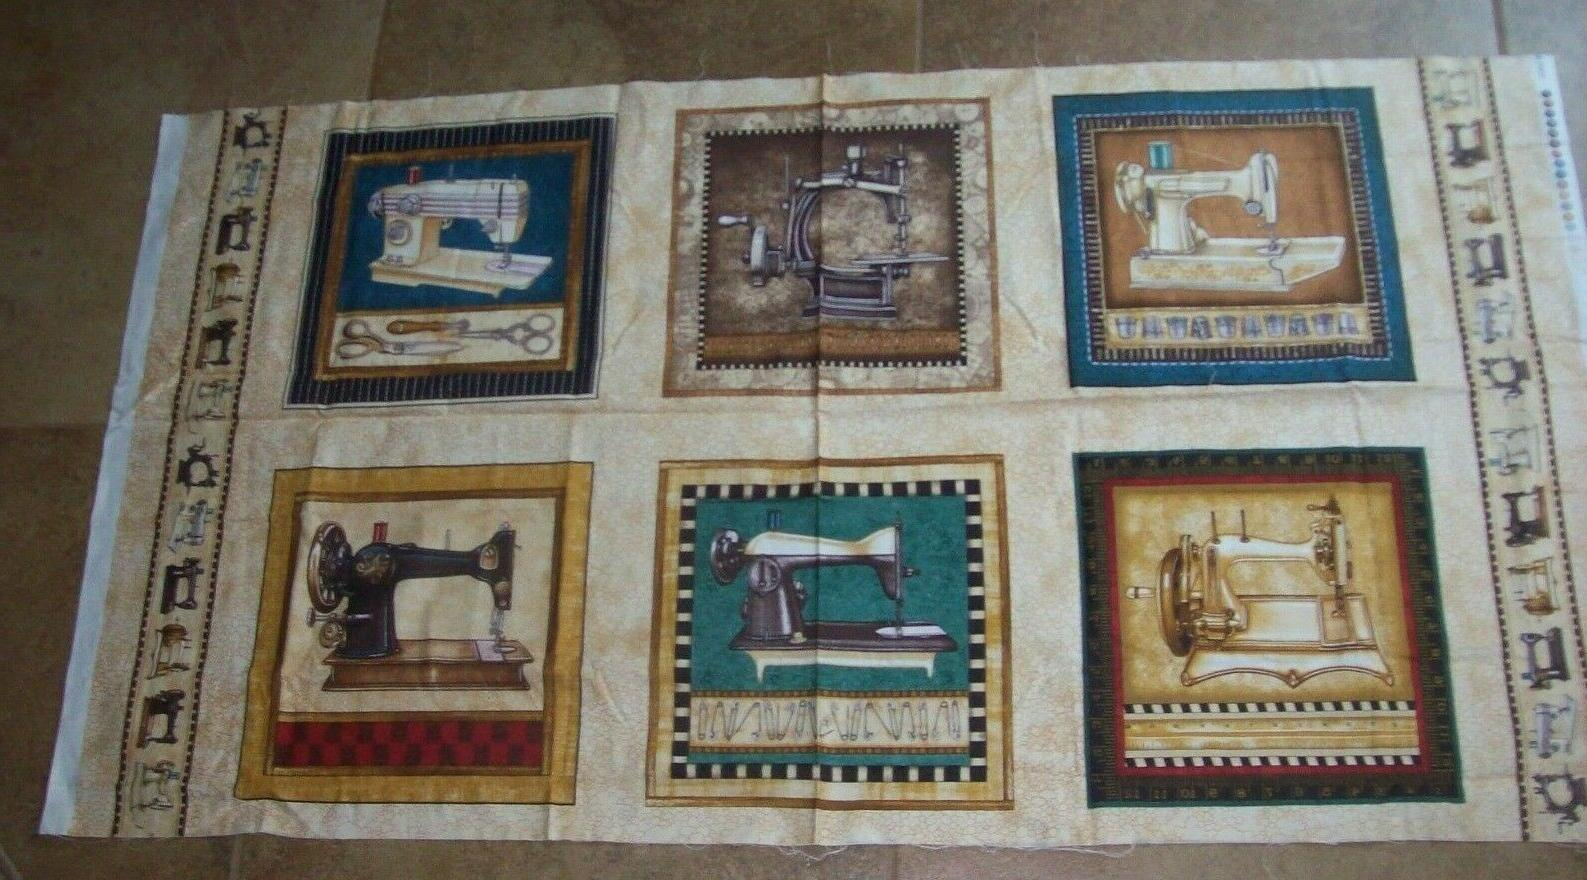 fabric vintage sewing machines cotton panel featherweight